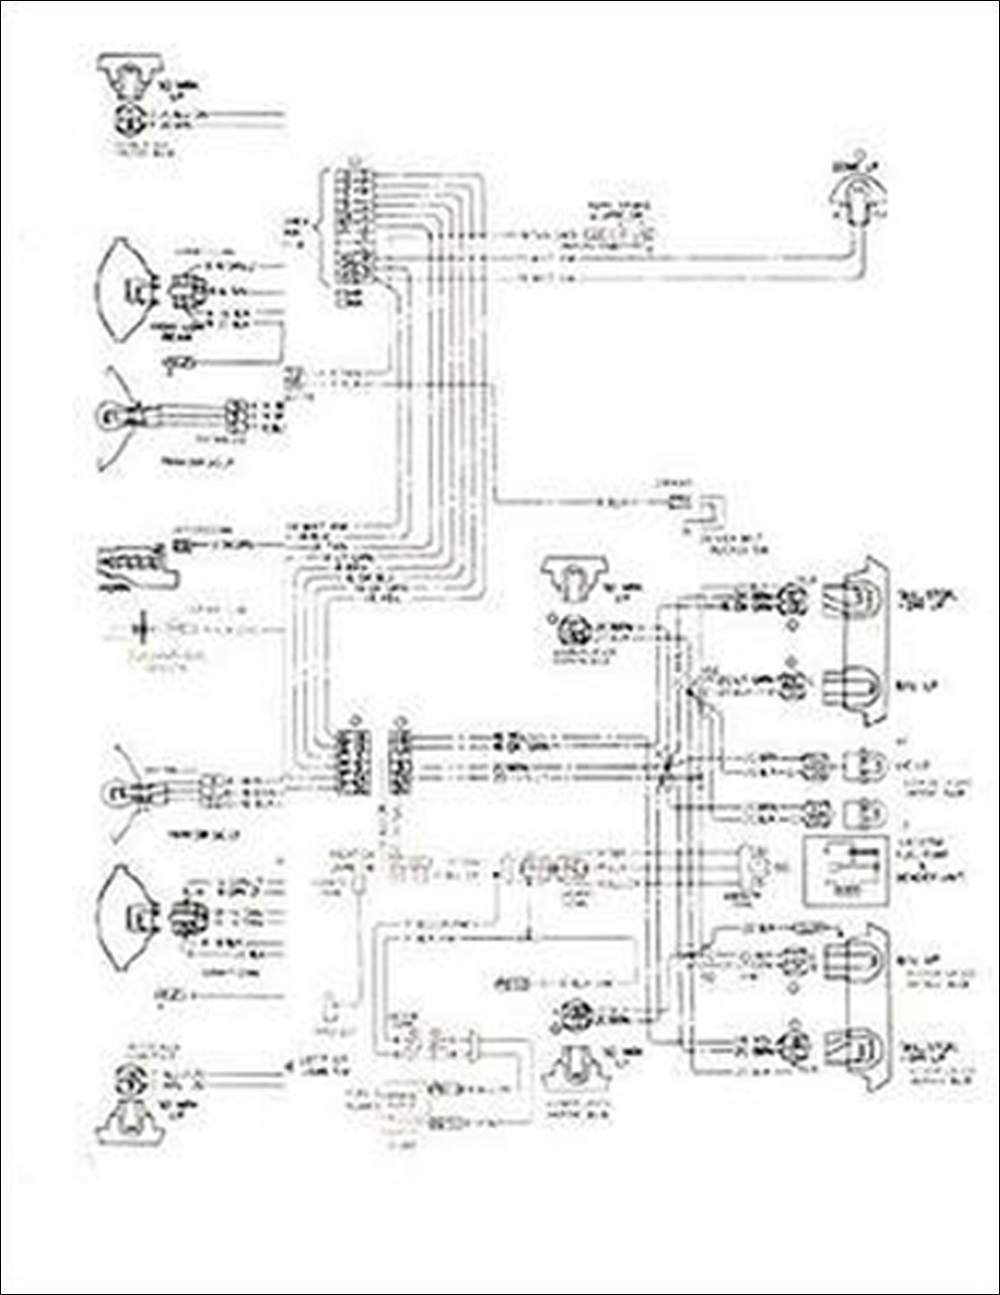 1977 chevrolet vega wiring diagram